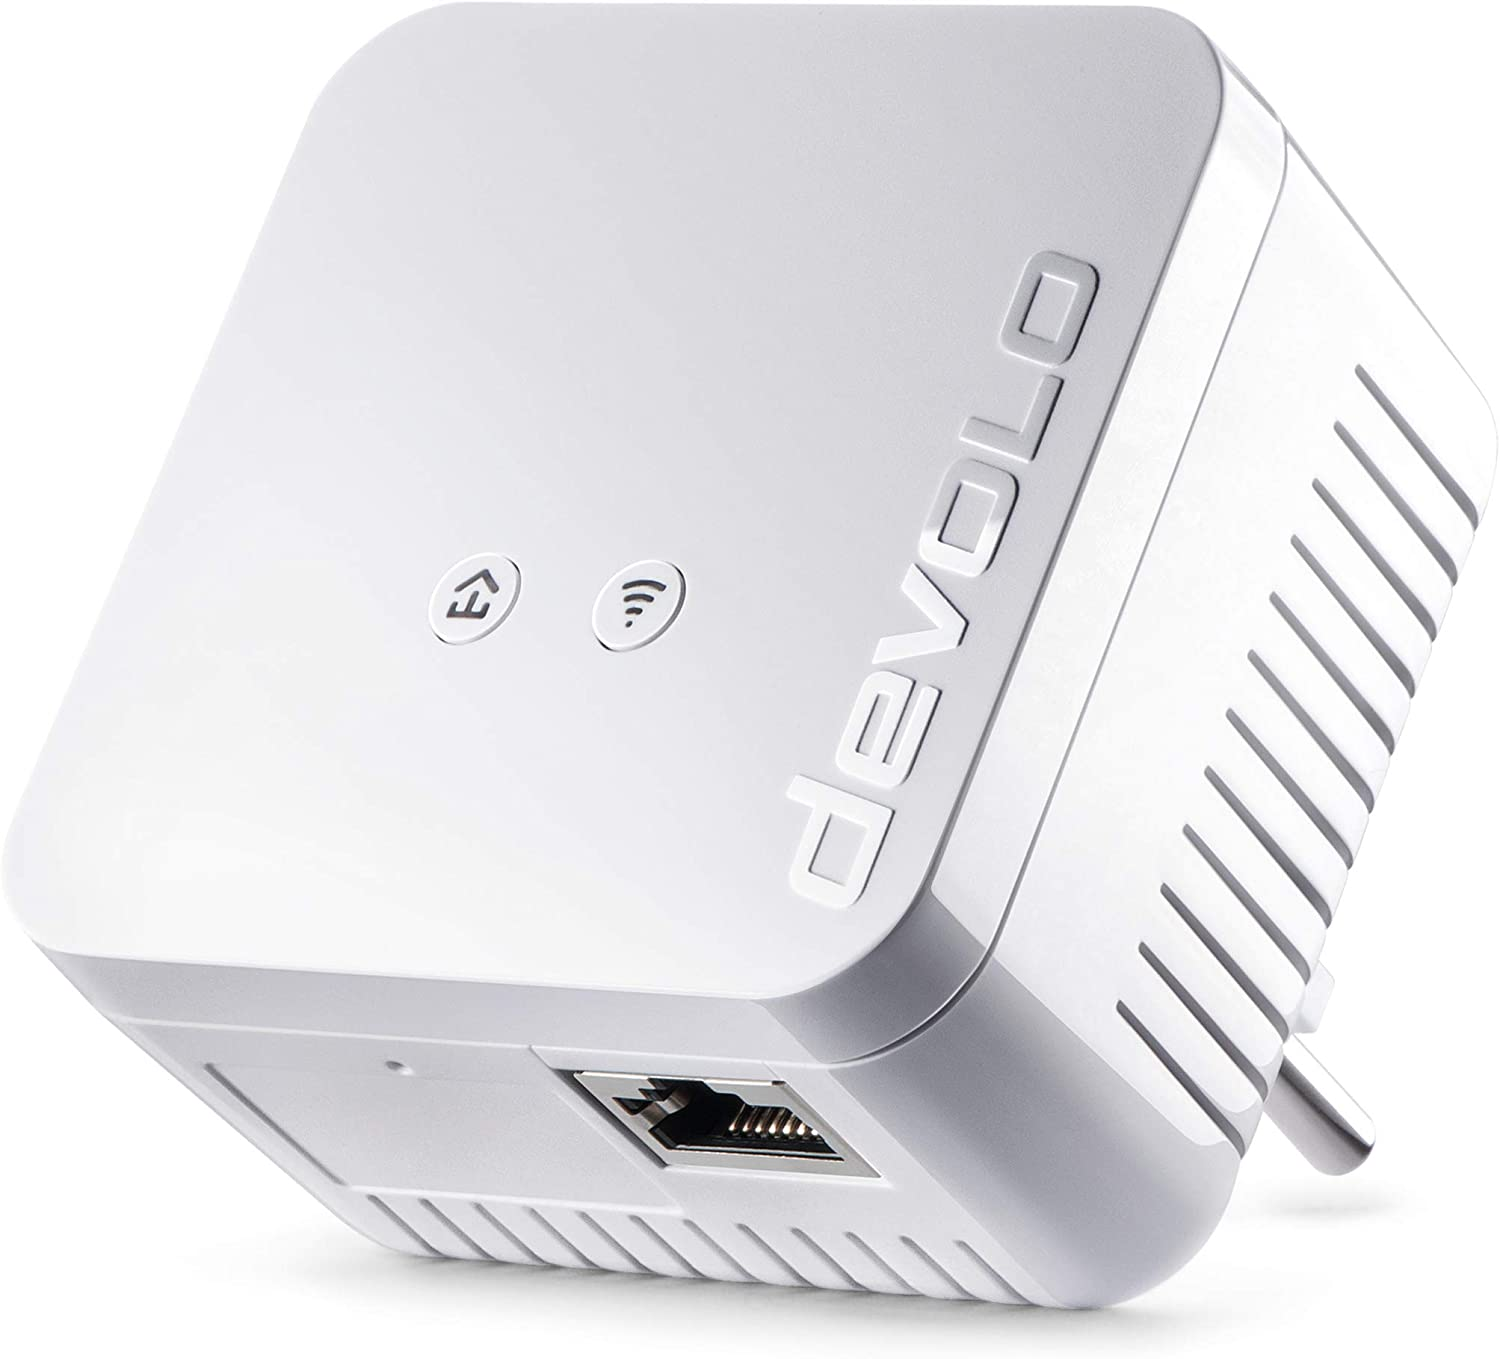 Devolo dLAN 550 WiFi (Internet de 500 Mbit/s a través de la red eléctrica, 300 Mbit/s a través de WiFi, 1 puerto LAN, 1 adaptador Powerline, adaptador de red PLC, amplificador de WiFi, WiFi Booster, WiFi Move) color blanco